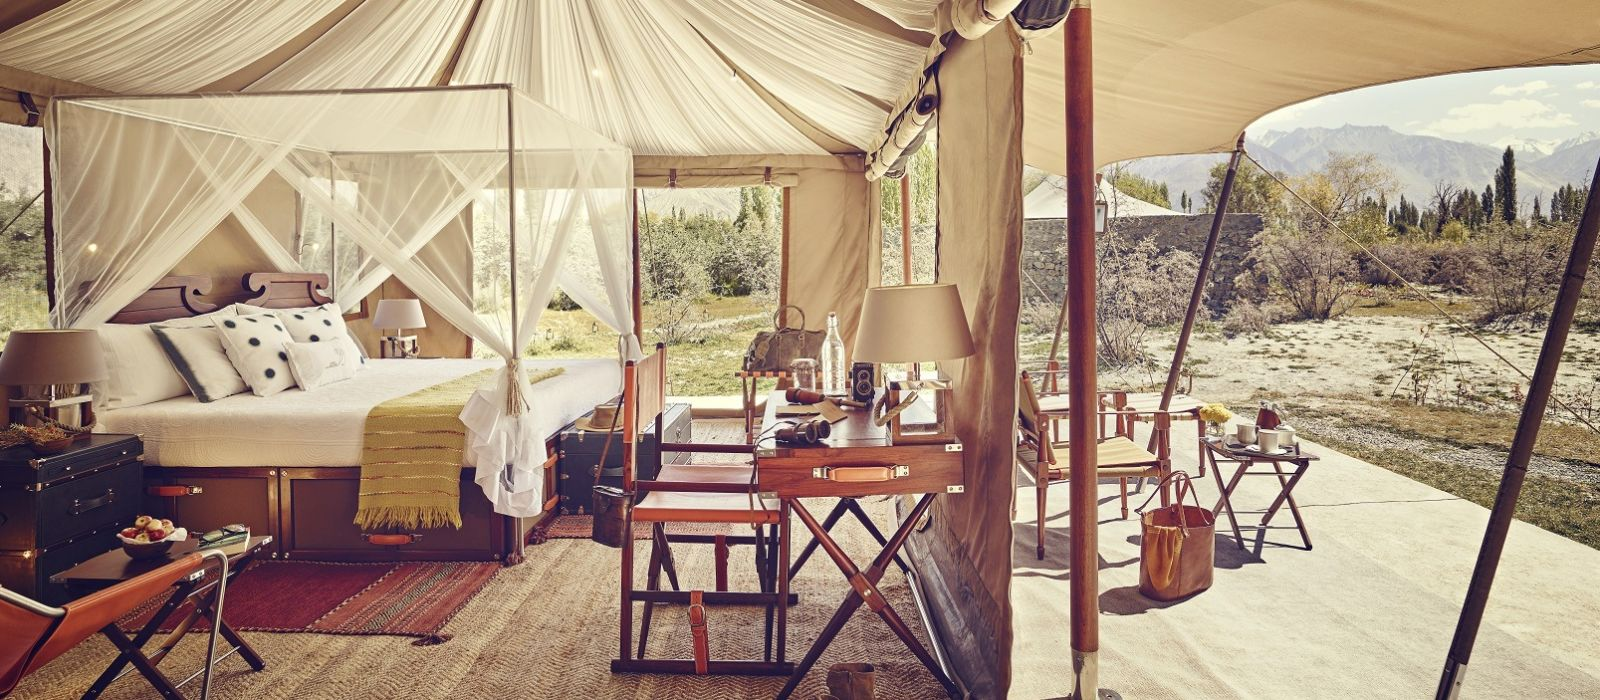 Glamping in The Land of the Lamas Tour Trip 5